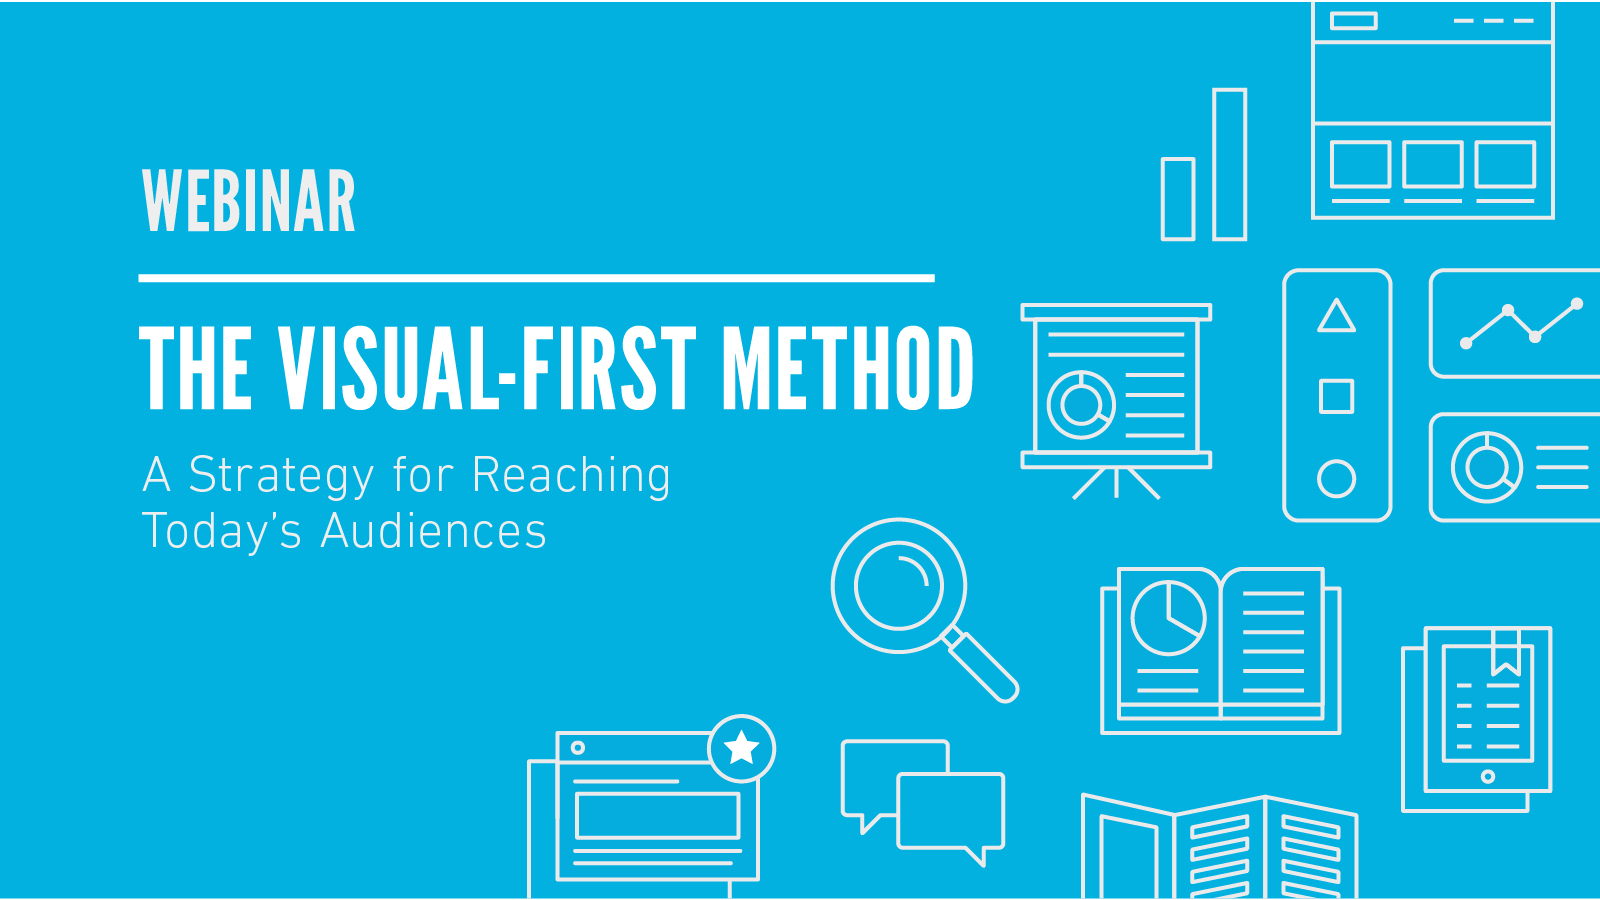 Visual-First Method Webinar for Content Marketing Professionals